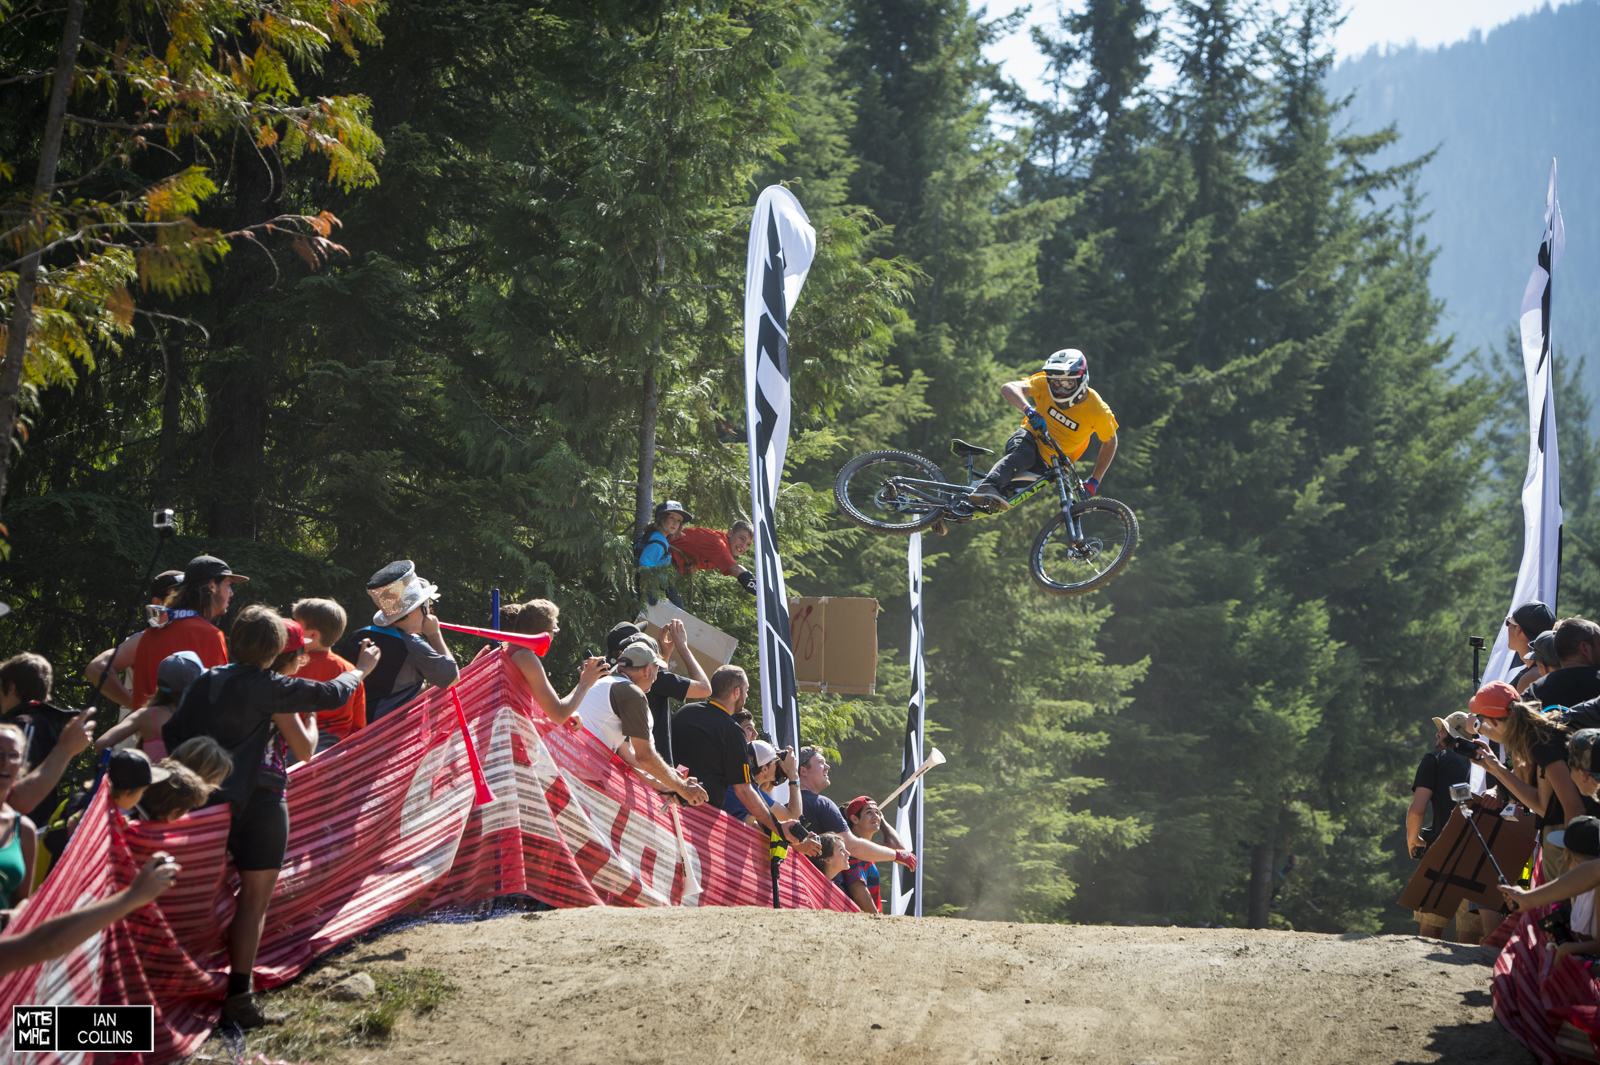 Coming all the way from Italy, Torquato Testa made the finals.  He'll be riding in Joyride as well.